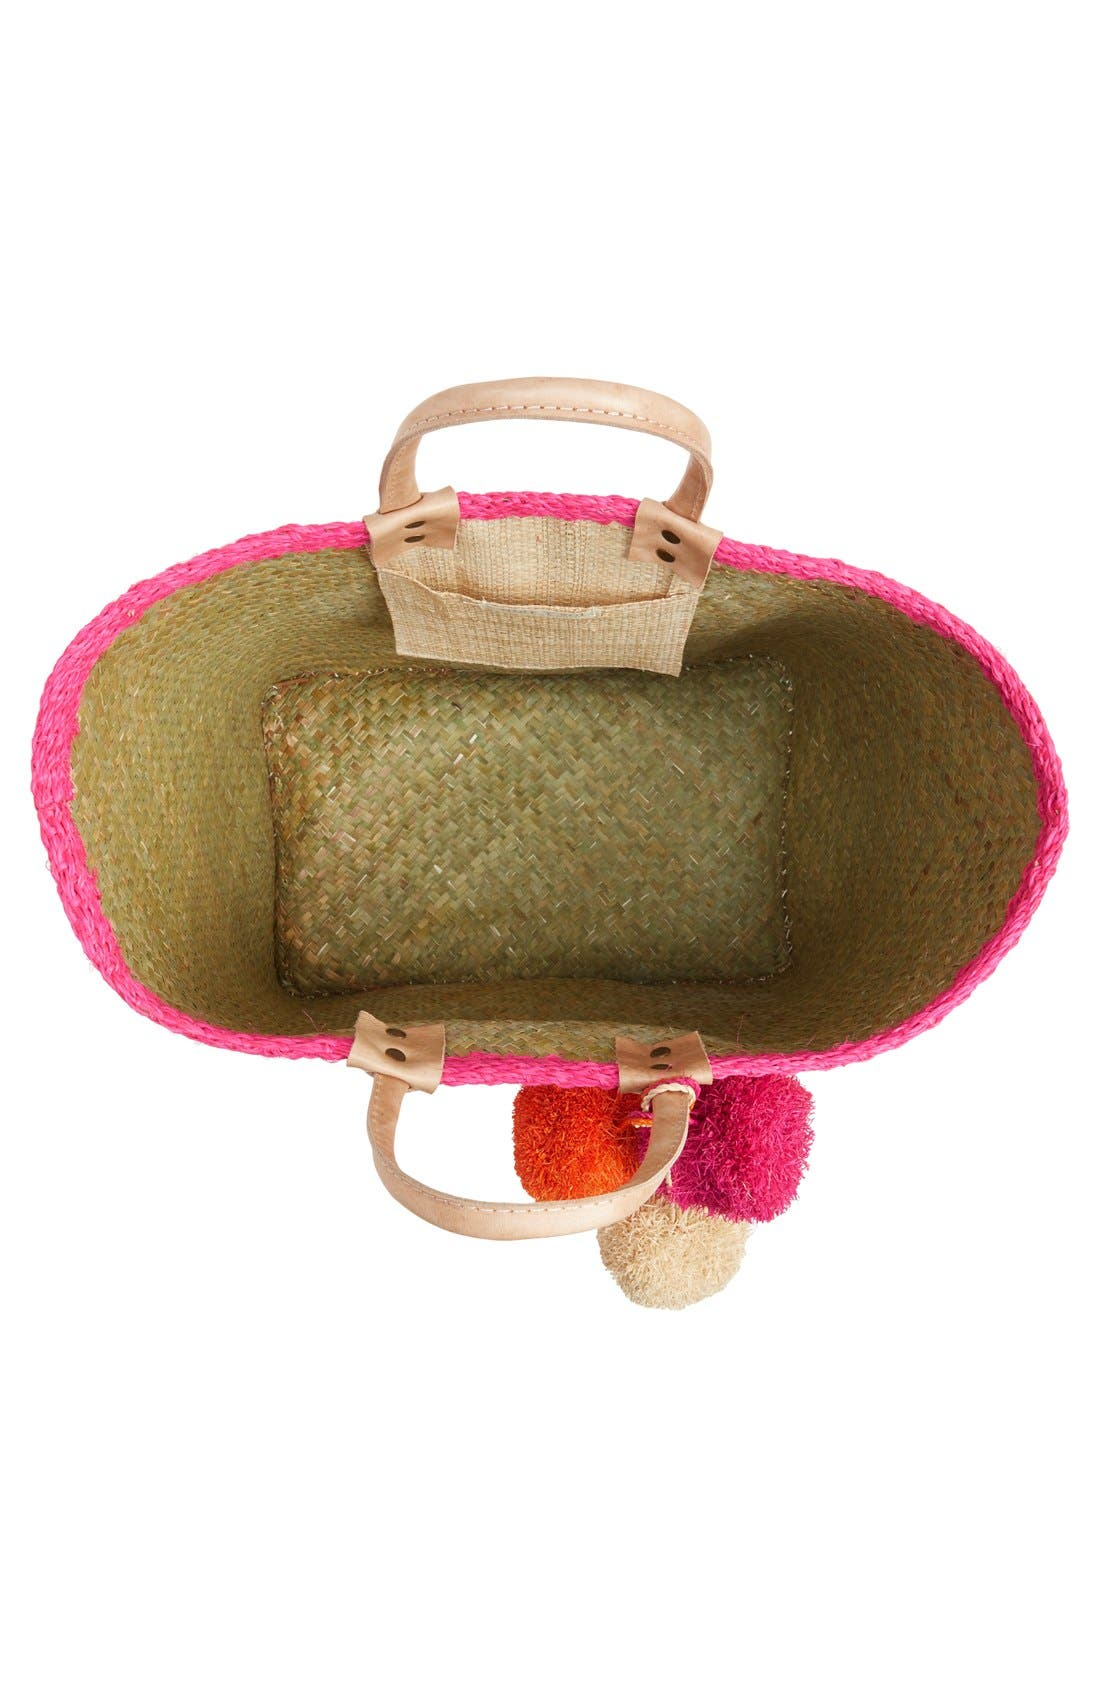 Alternate Image 4  - Mar y Sol 'Capri' Woven Tote with Pom Charms